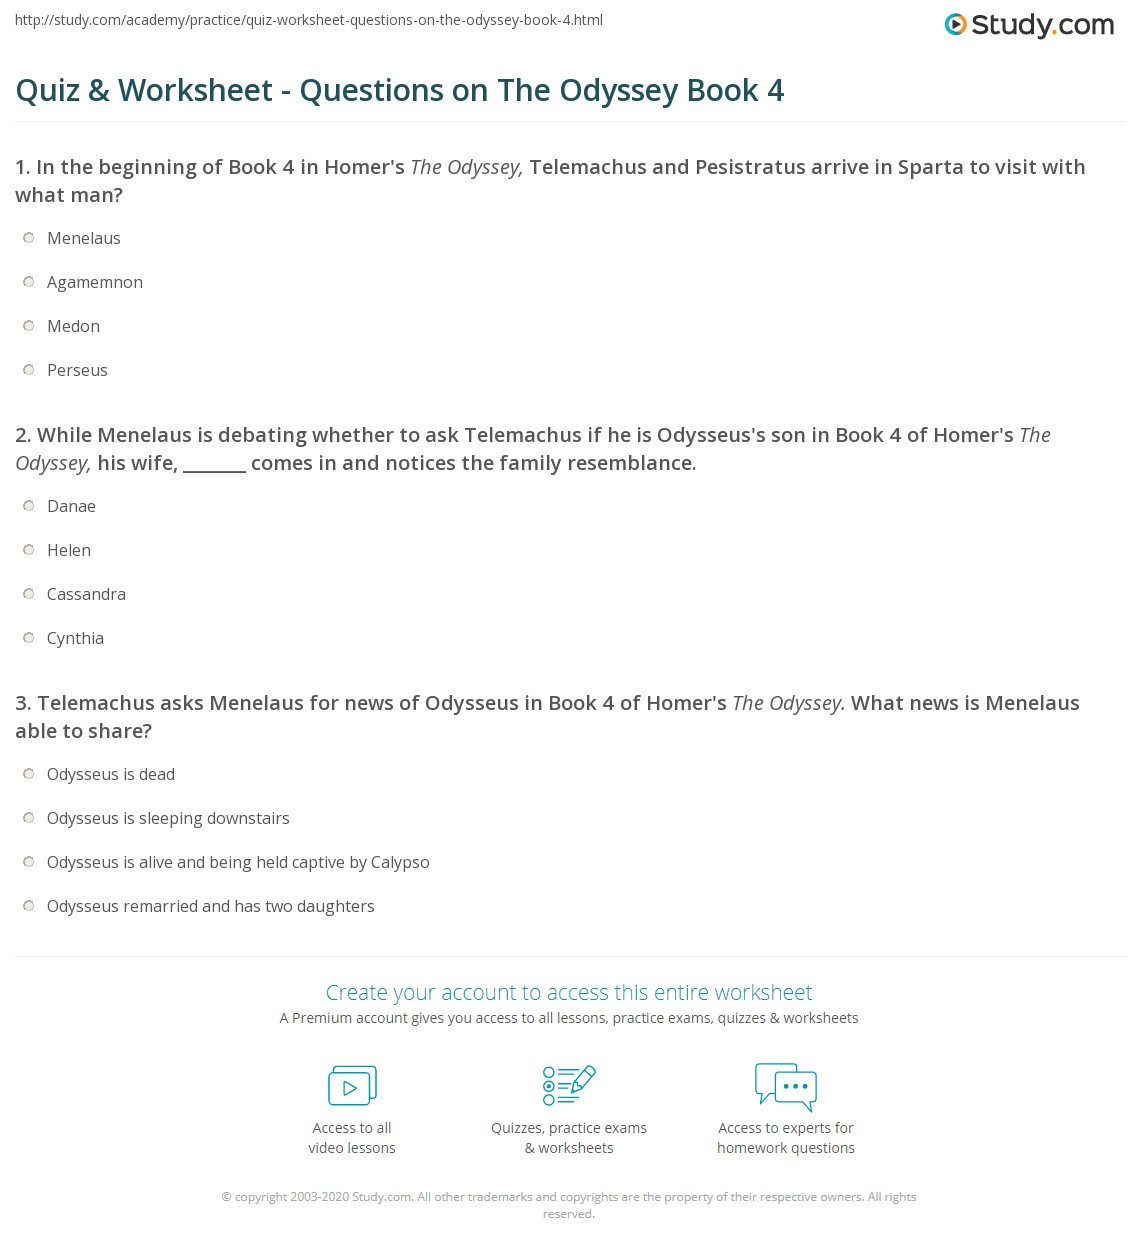 quiz worksheet questions on the odyssey book 4 study com rh study com the odyssey film study guide answer key Odyssey Answer Key Book